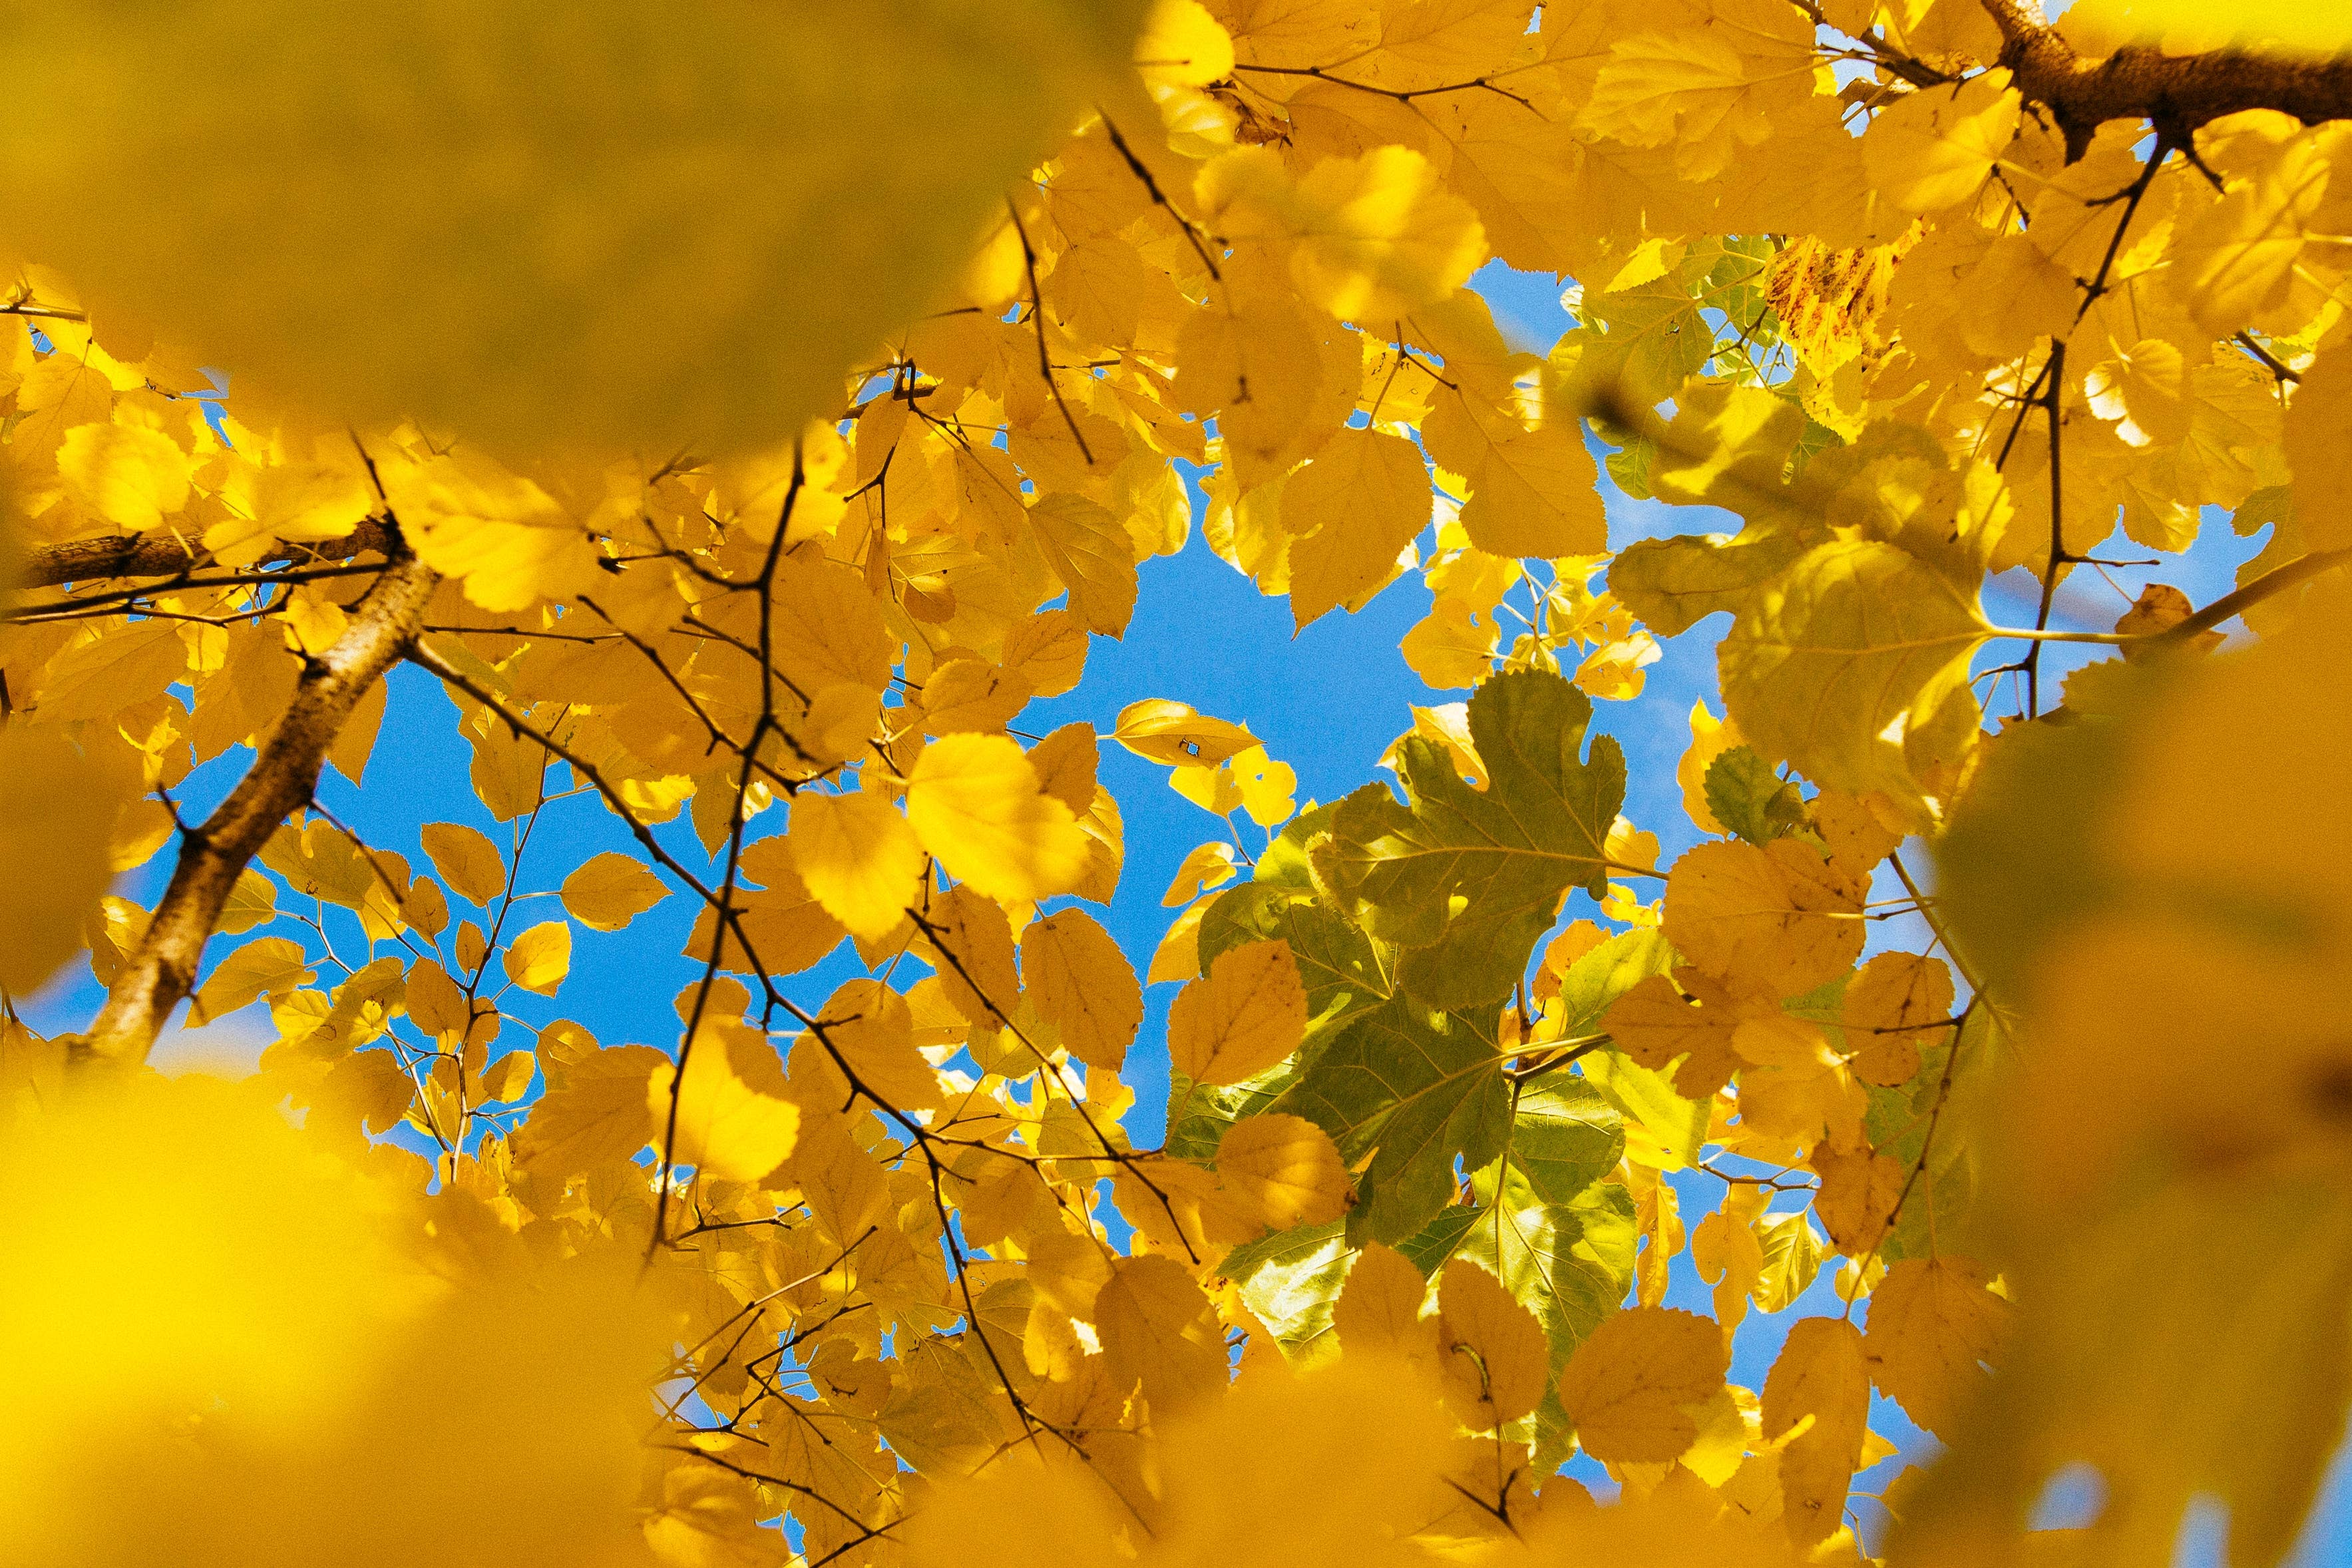 Alt='Photo looking up through canopy of golden-yellow leaves into bright blue sky'